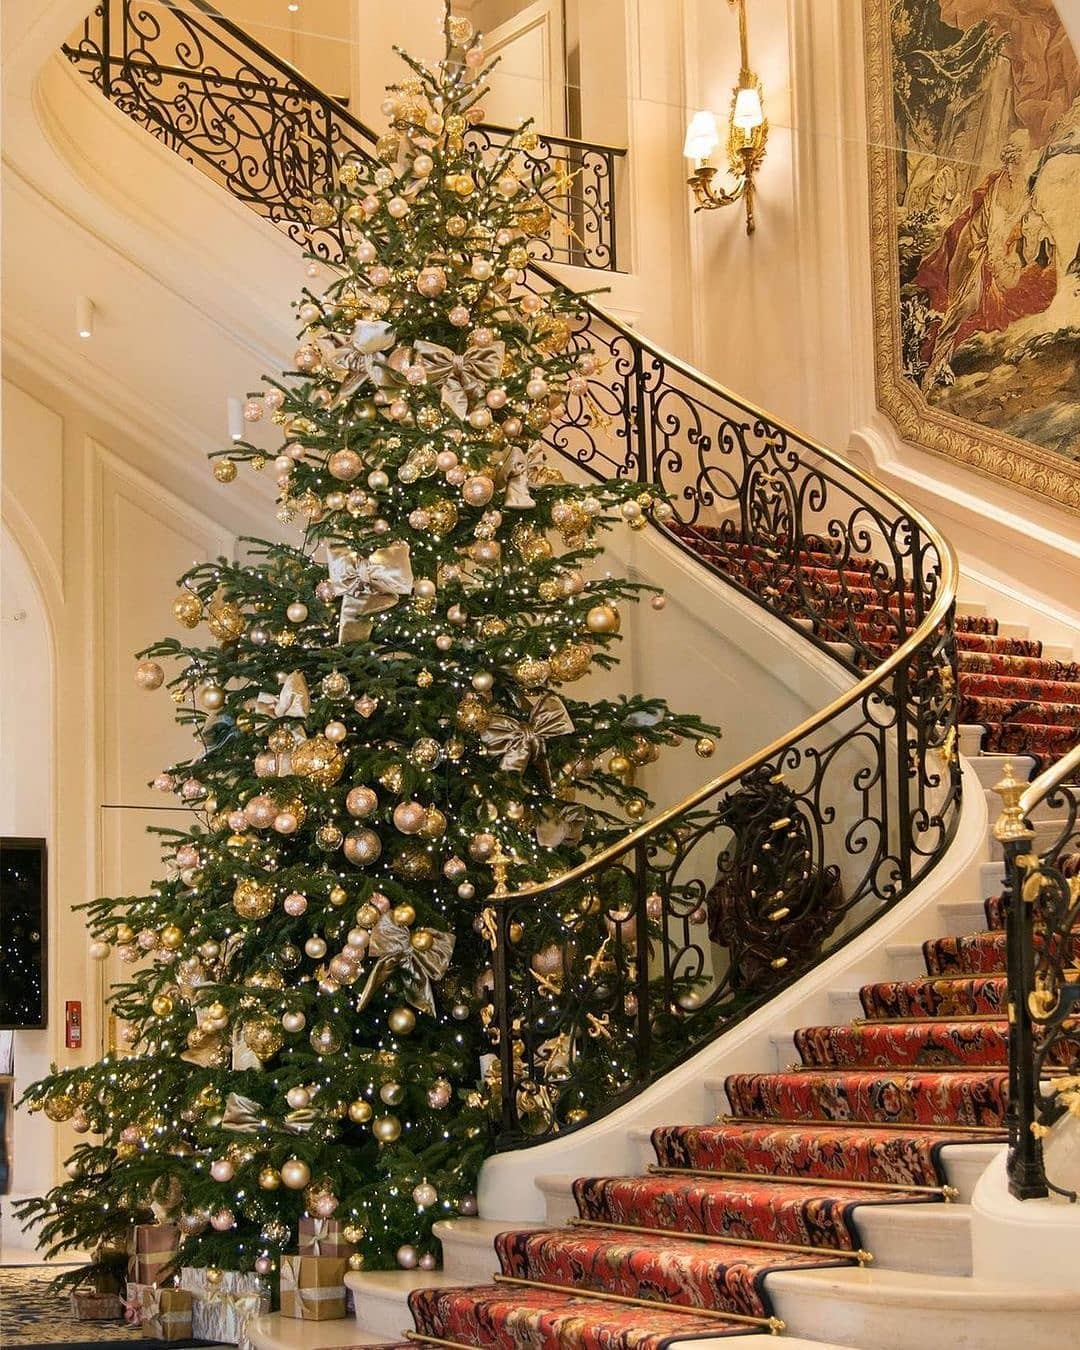 Christmas Tree DP Wishes With HD Photos For DP 2020